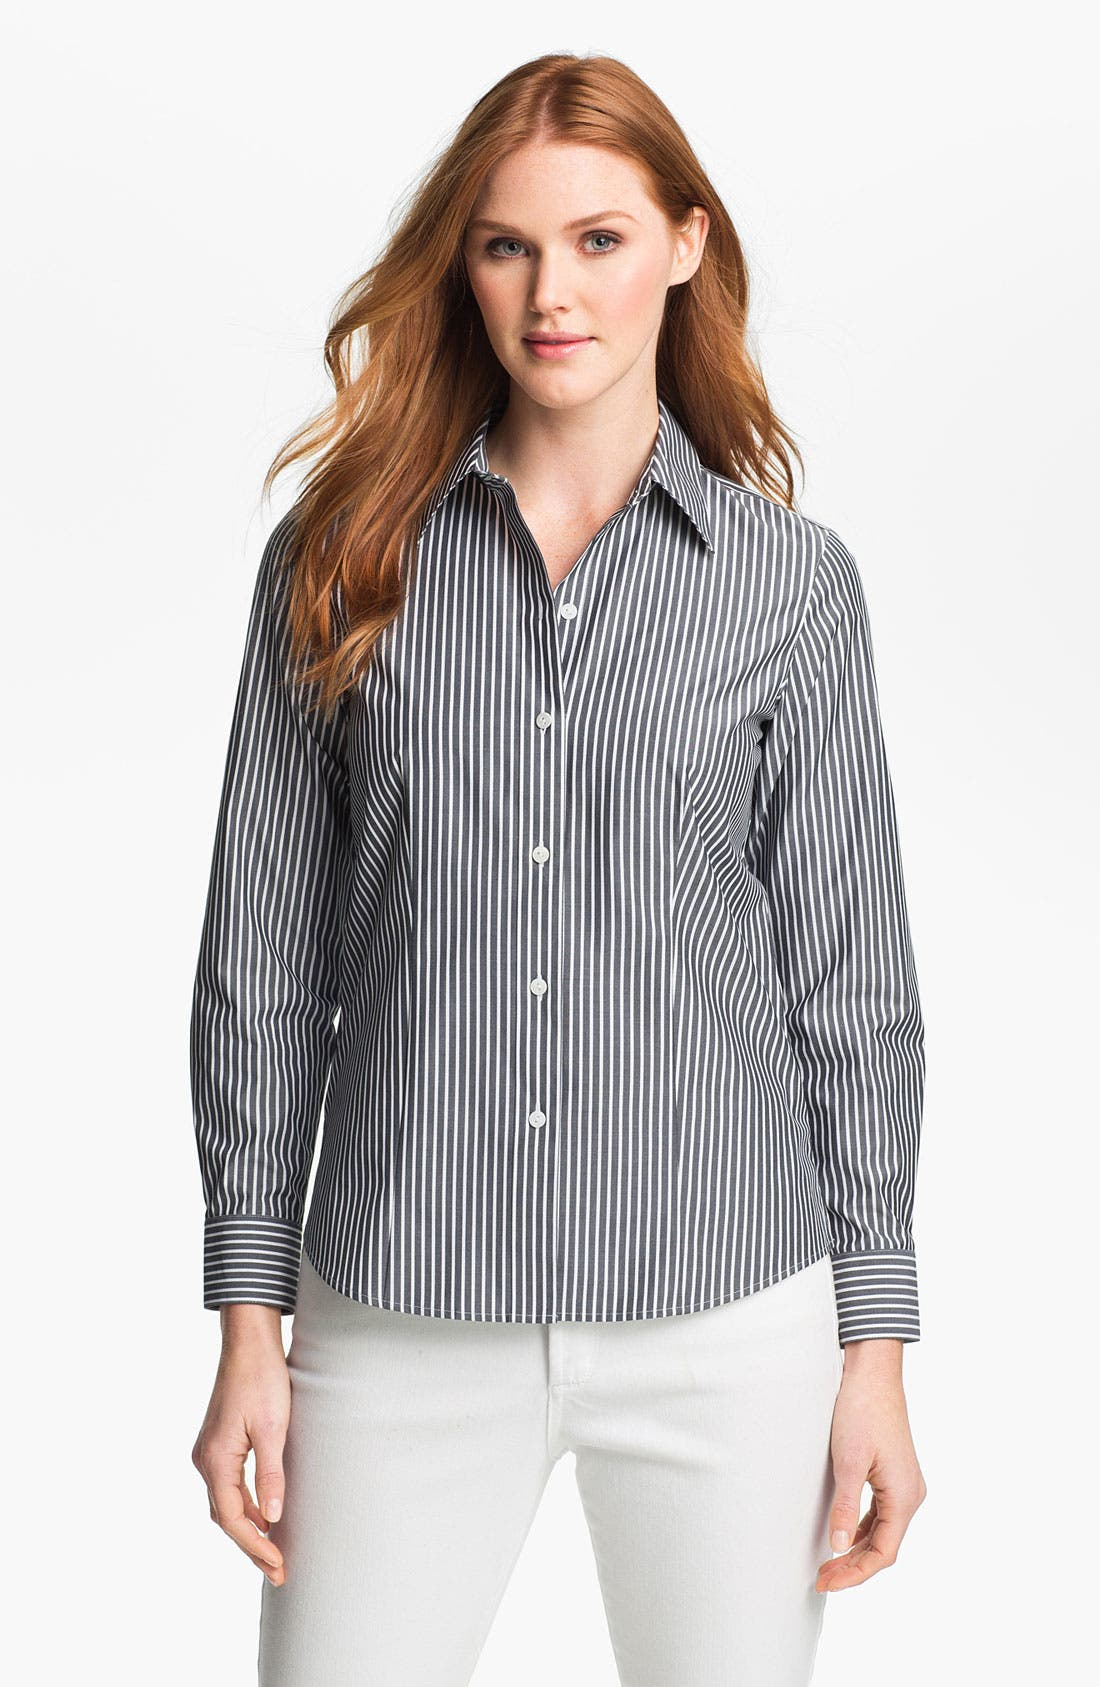 Alternate Image 1 Selected - Foxcroft 'Essential' Stripe Shirt